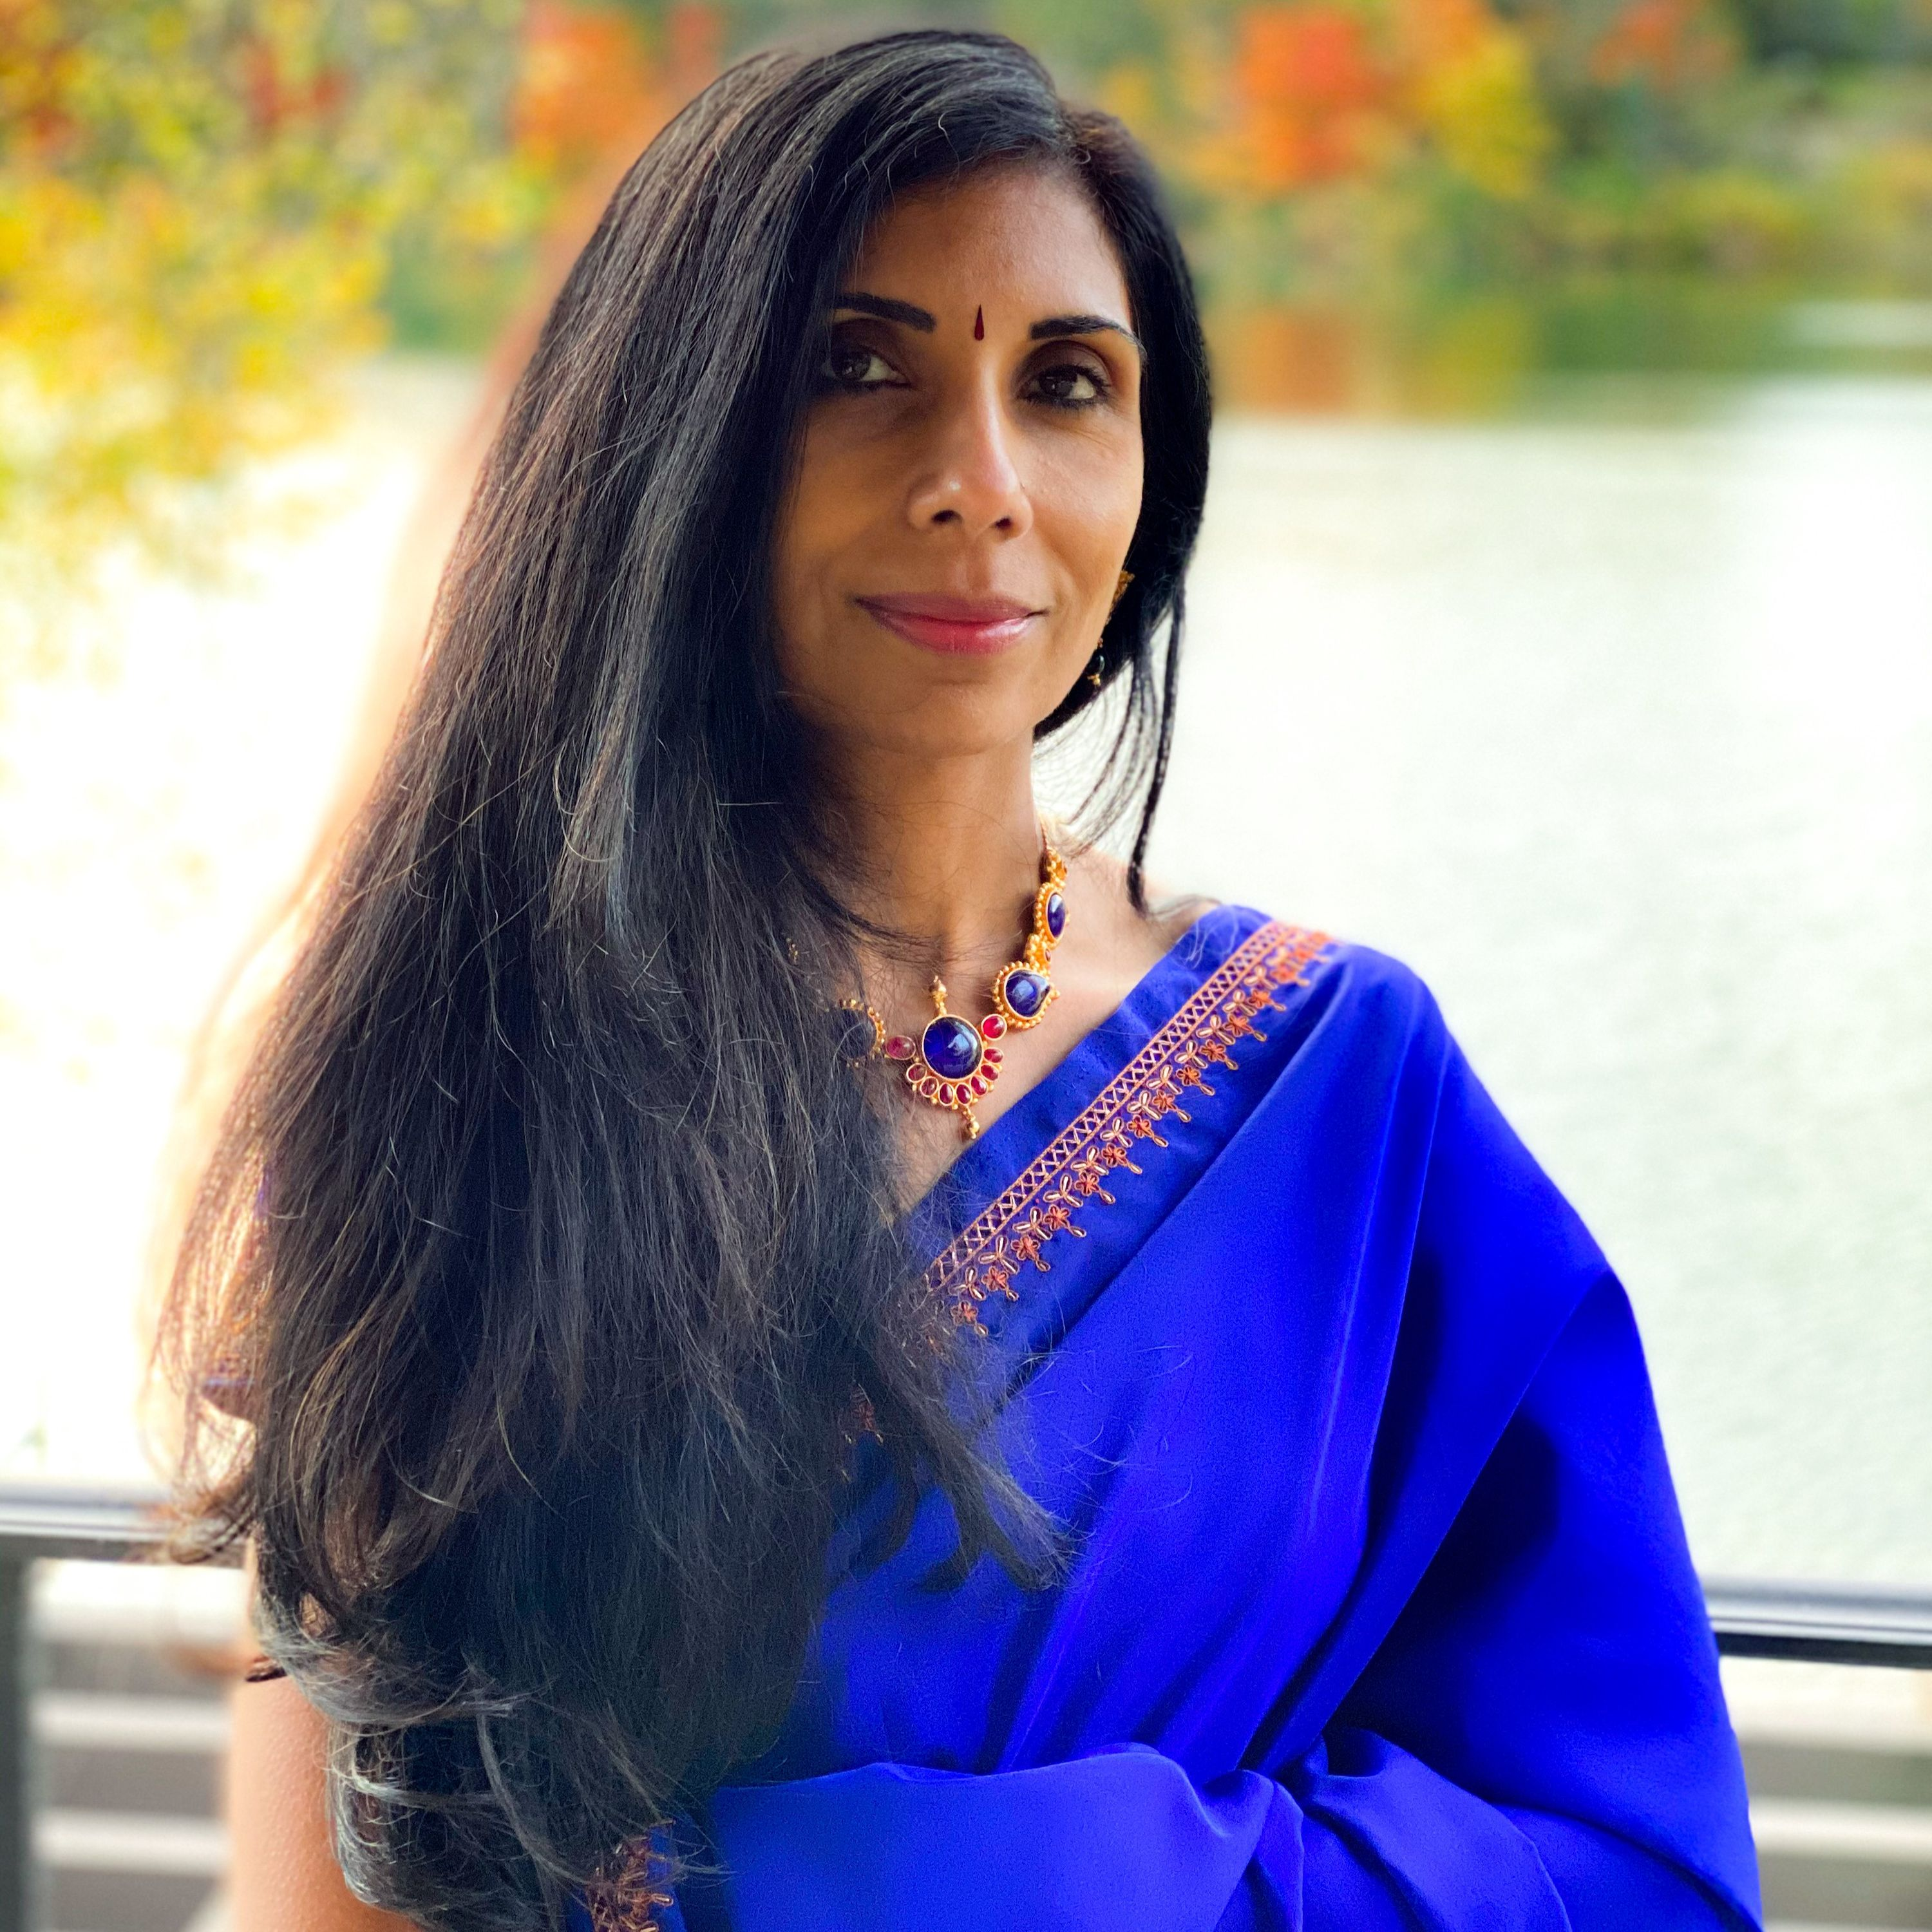 Non-duality and the Divine Feminine with Kavitha Chinnaiyan